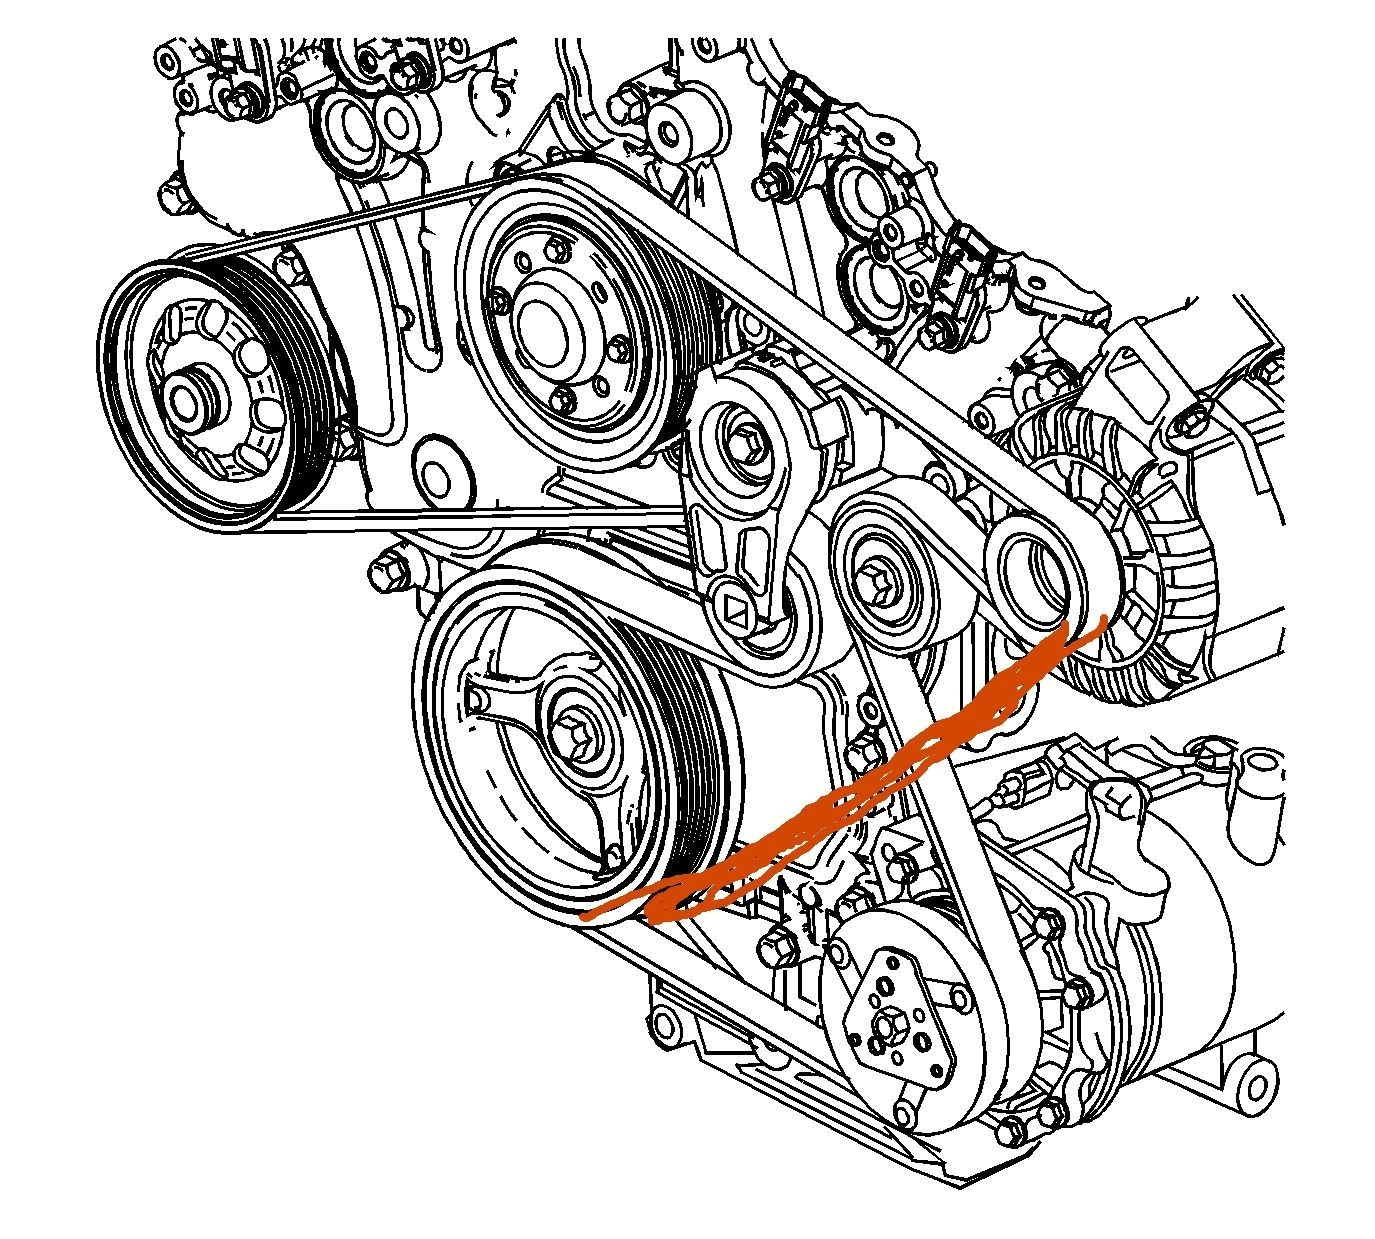 hight resolution of serpentine belt to bypass a c i would like to know if there is a 2005 buick rainier belt diagram